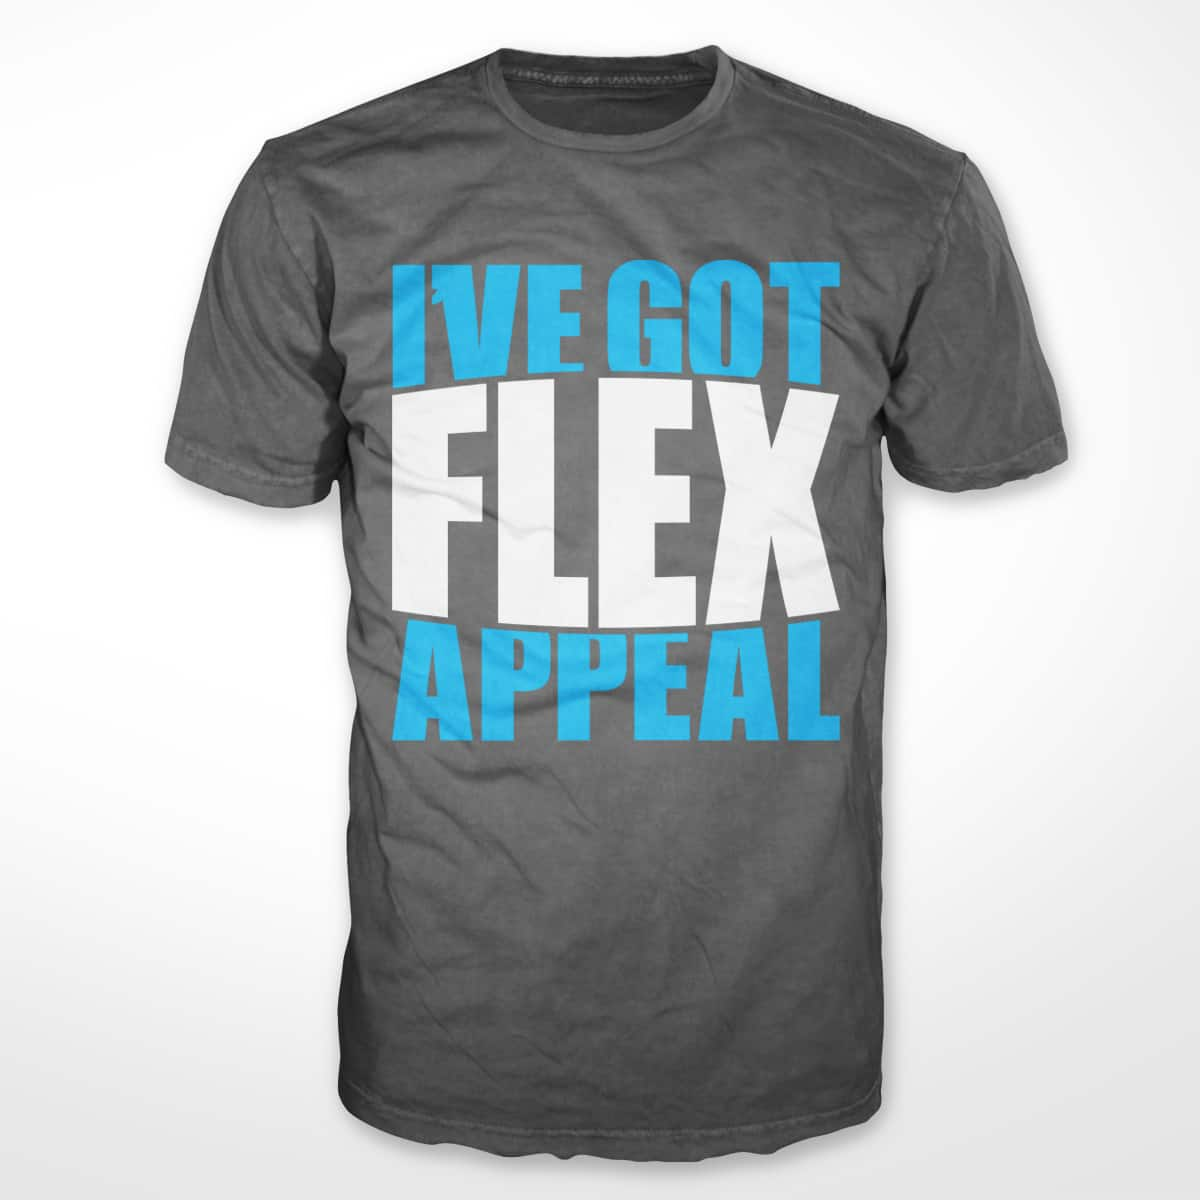 Flex Appeal by koremen on Threadless